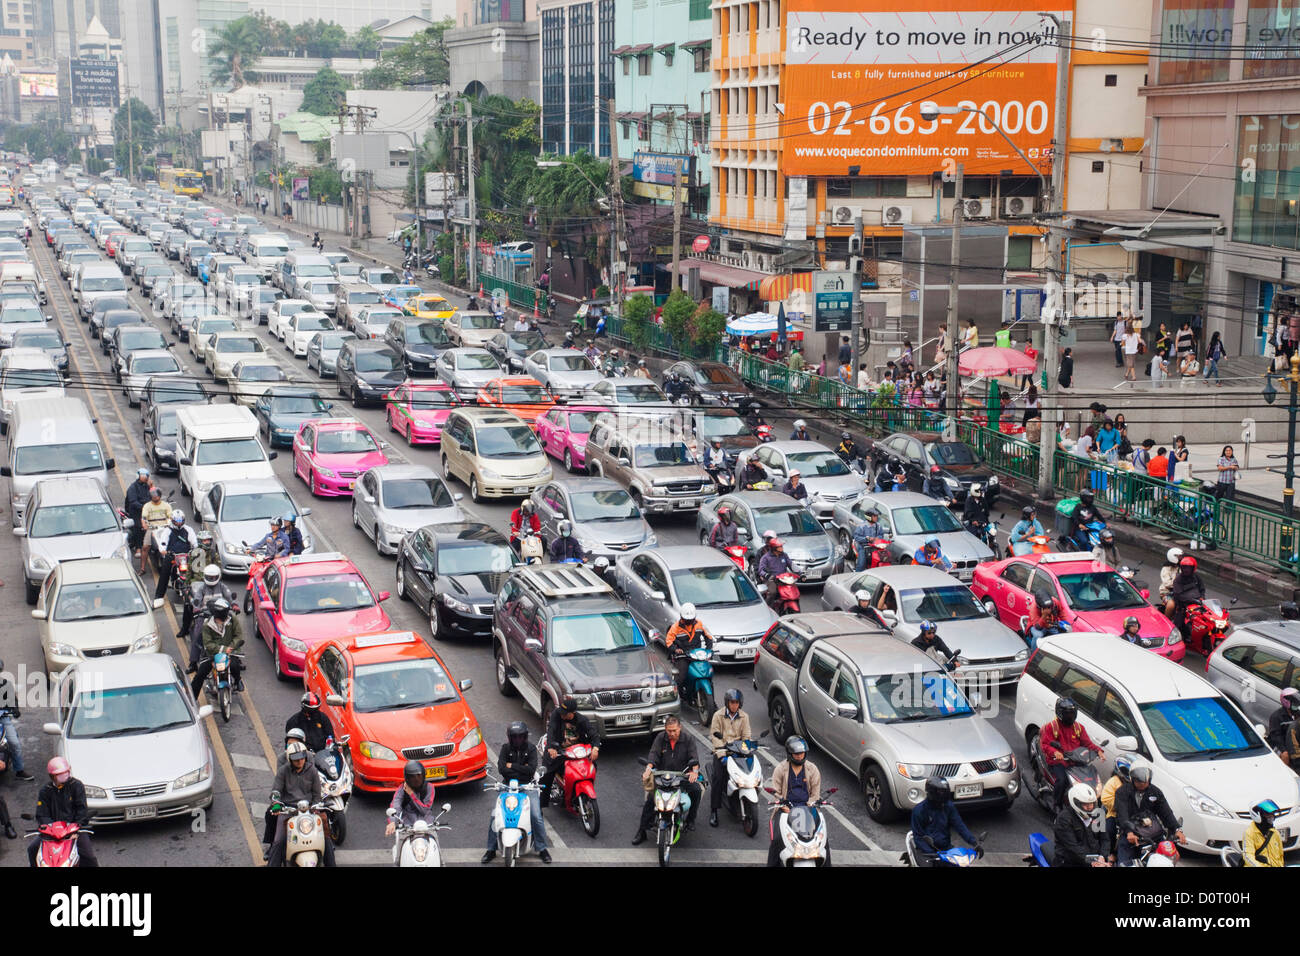 Asia Thailand Bangkok Traffic Jam Traffic Traffic Gridlock Congestion Road Roads Car Cars Taxi Taxis Motor Scooter - Stock Image